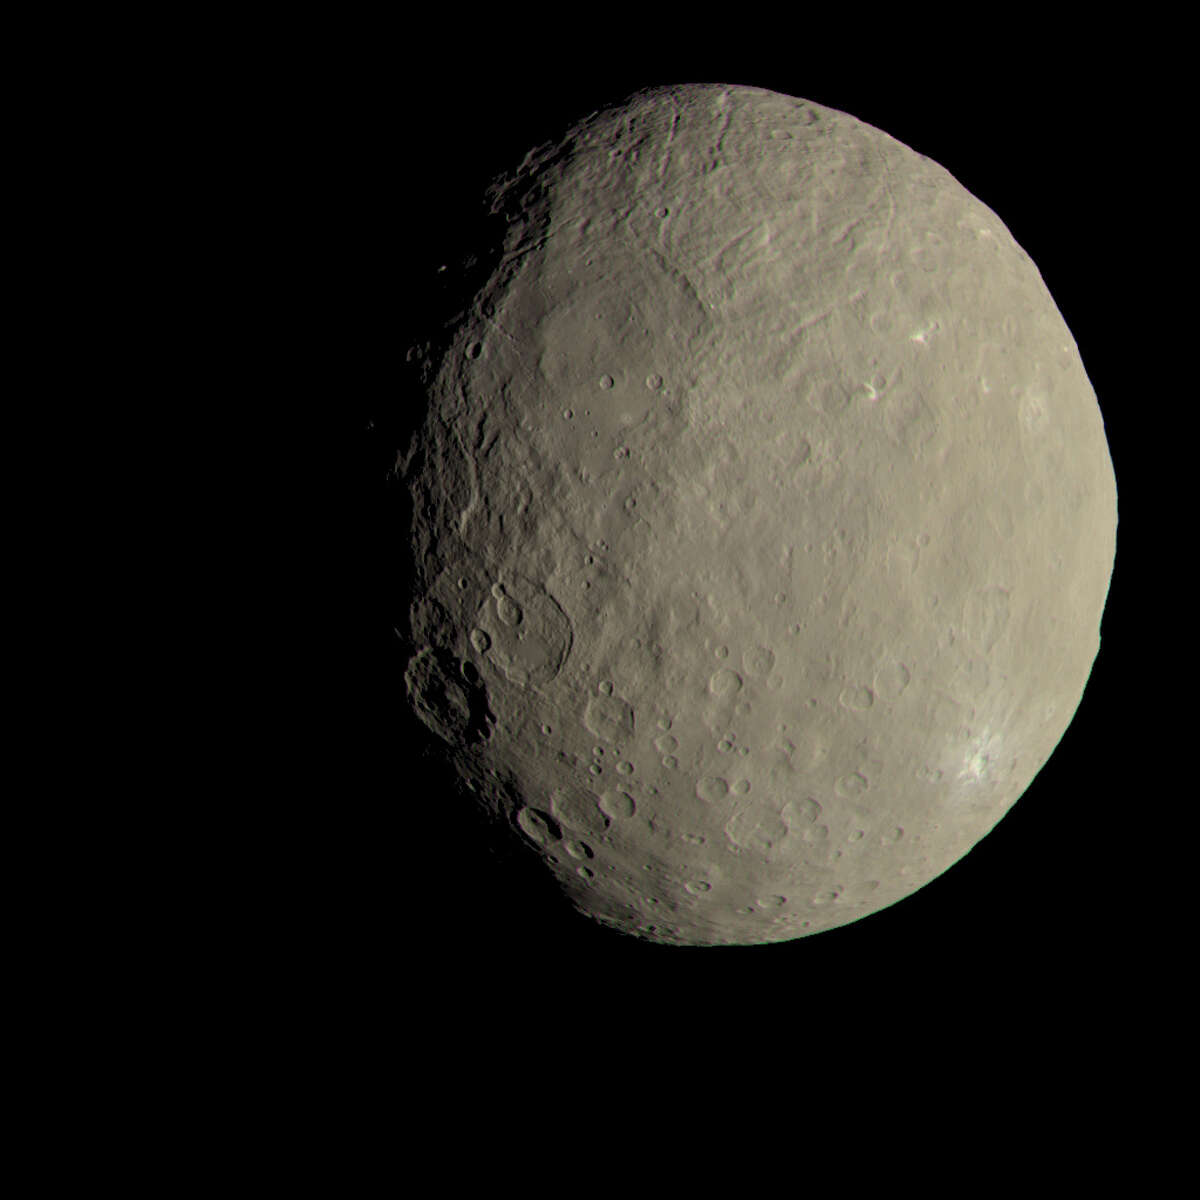 During its sixth orbit of Ceres, NASA's Dawn spacecraft recently snapped dozens of images of the dwarf planet, the largest object between Mars and Jupiter. Click through to see pictures of Ceres.